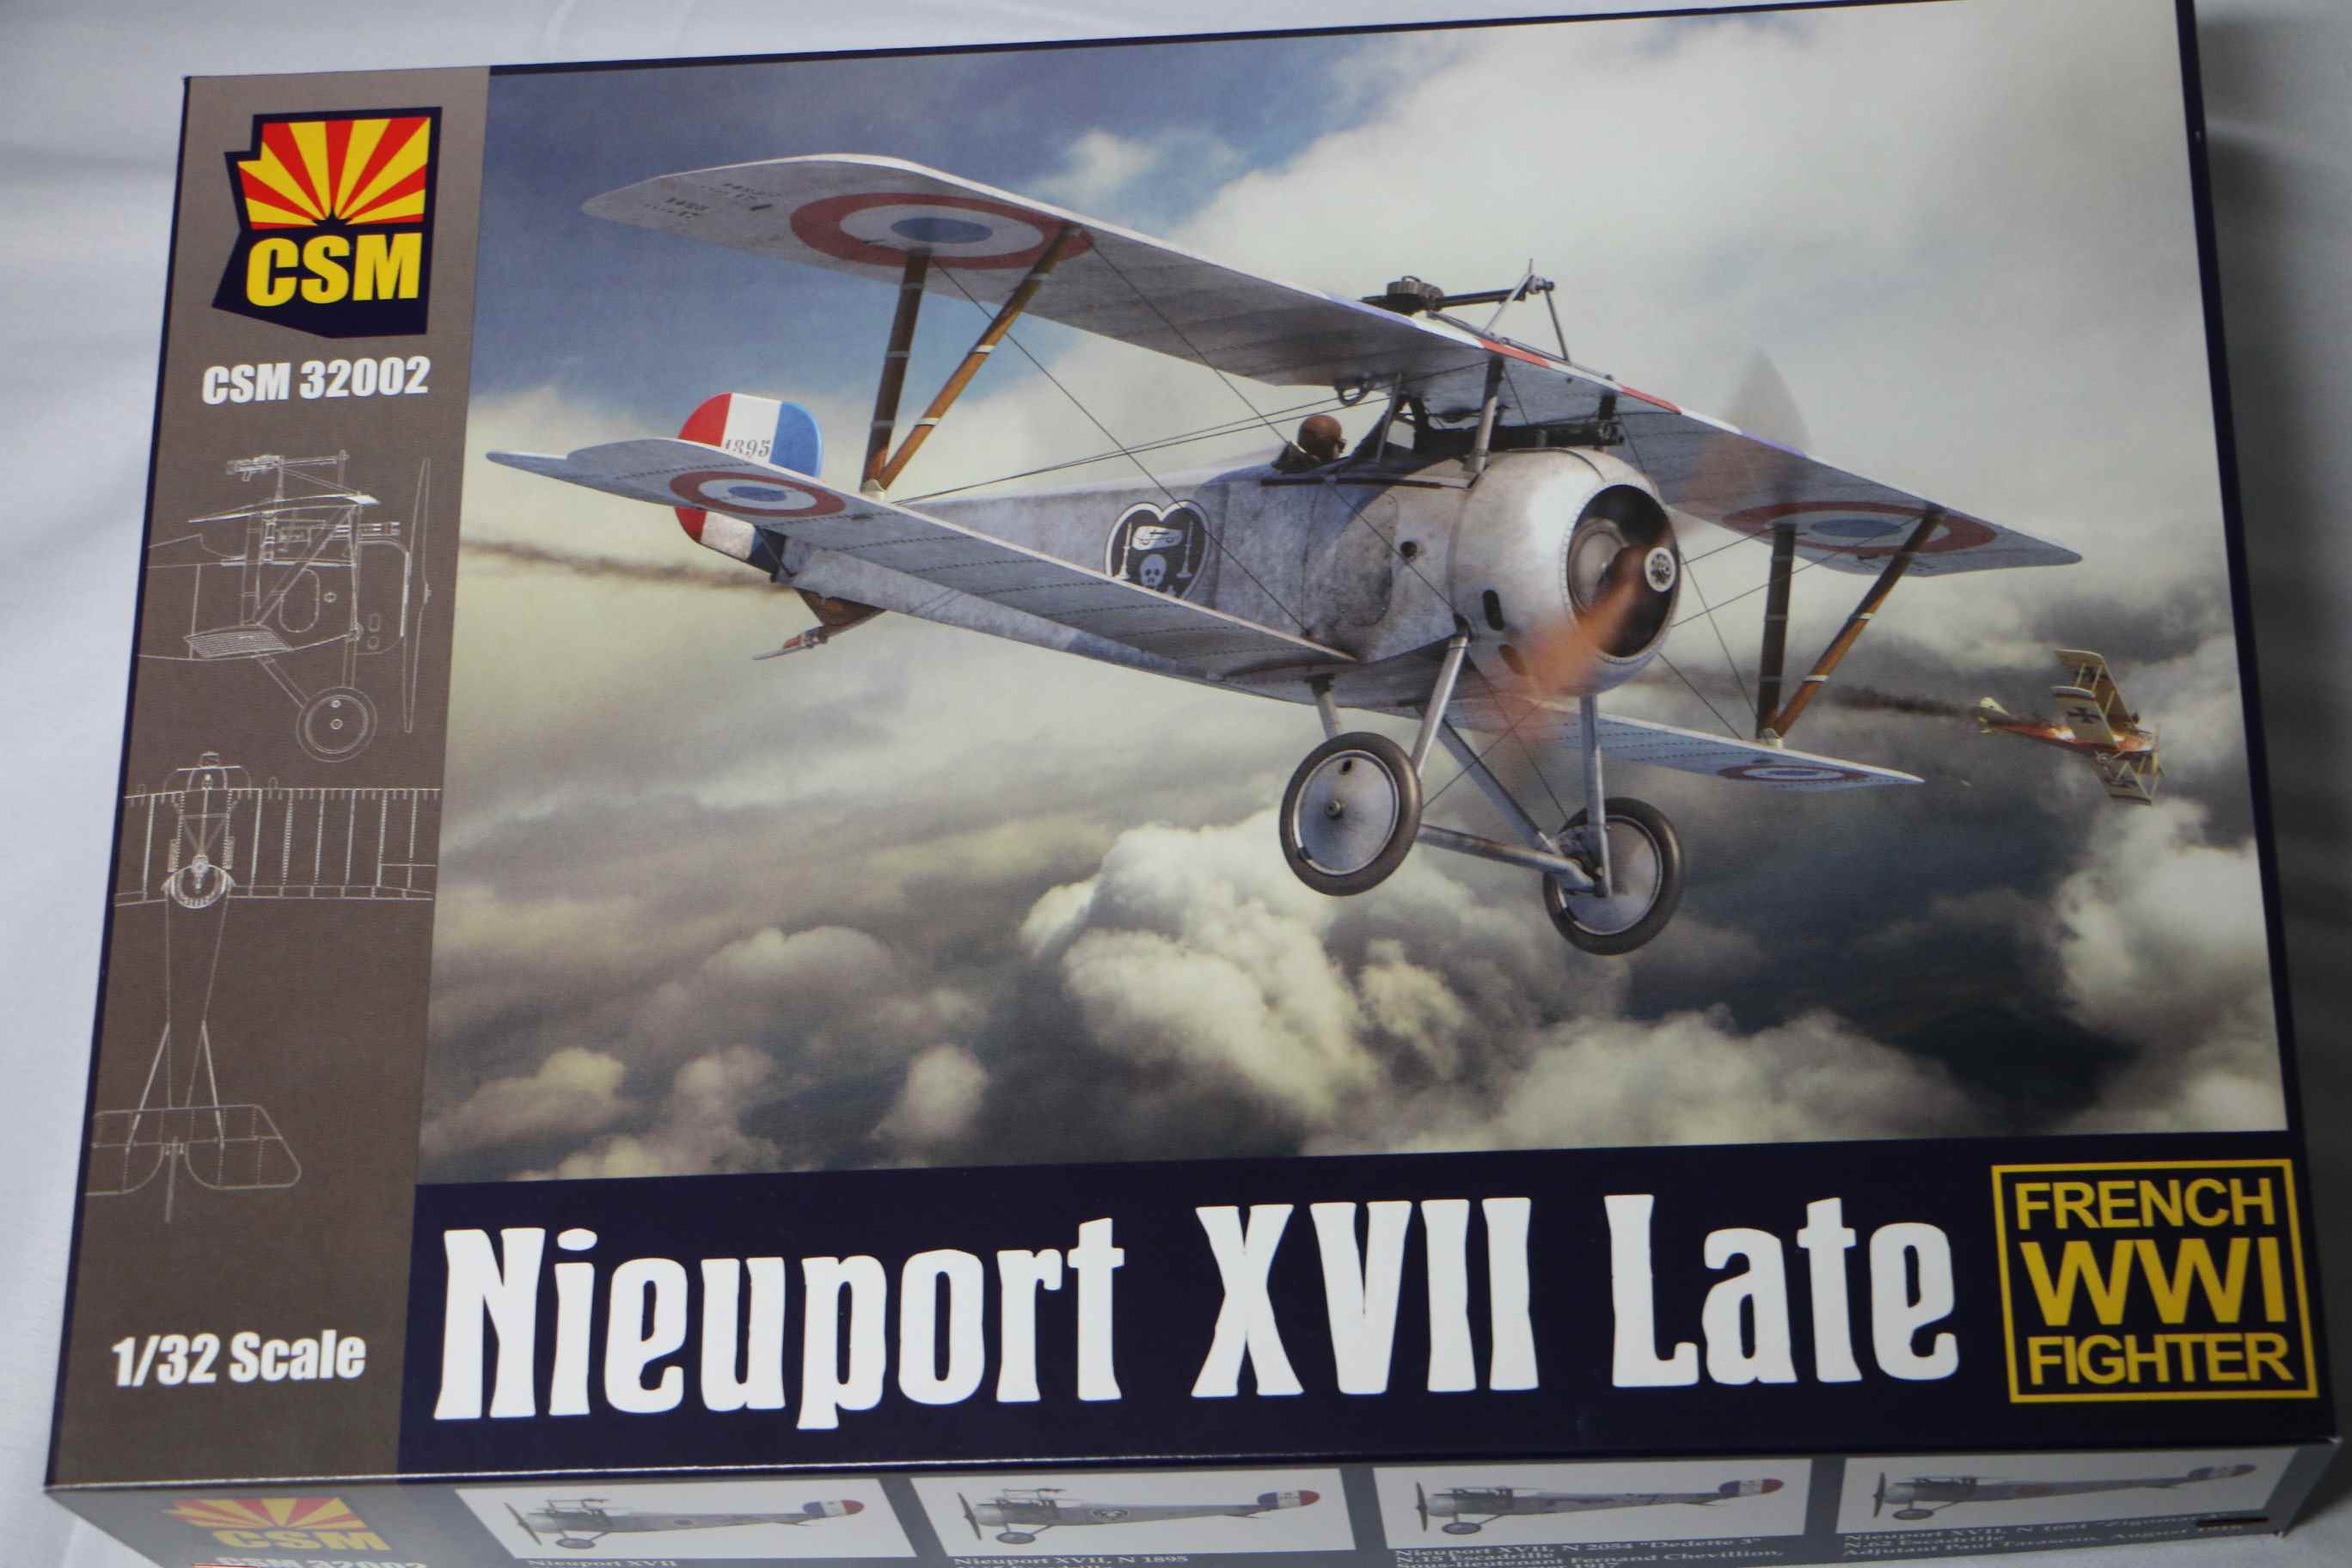 CSM32002 - Copper State Models 1/32 Nieuport 17 Late